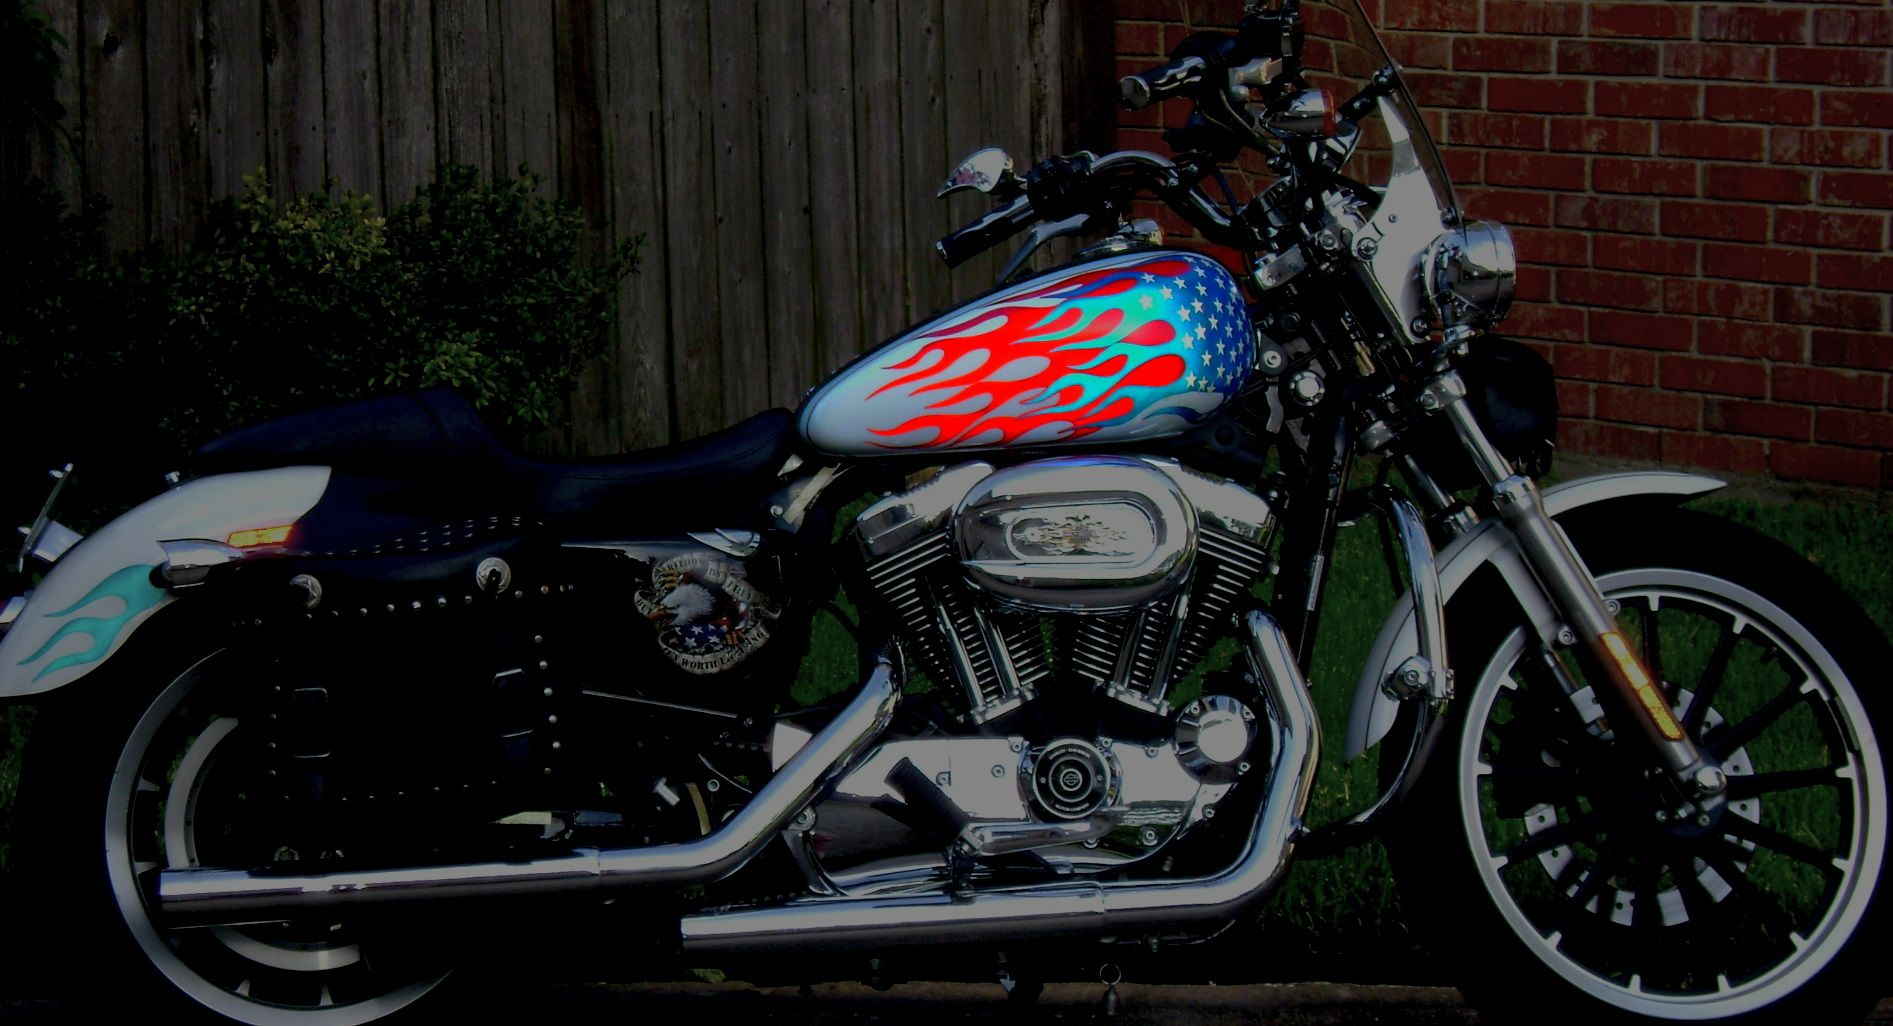 Custom Painted Motorcycle Gas Tanks Google Search Motorcycle - Decal graphics for motorcyclesmotorcycle gas tank customizable stripes graphics decal kits